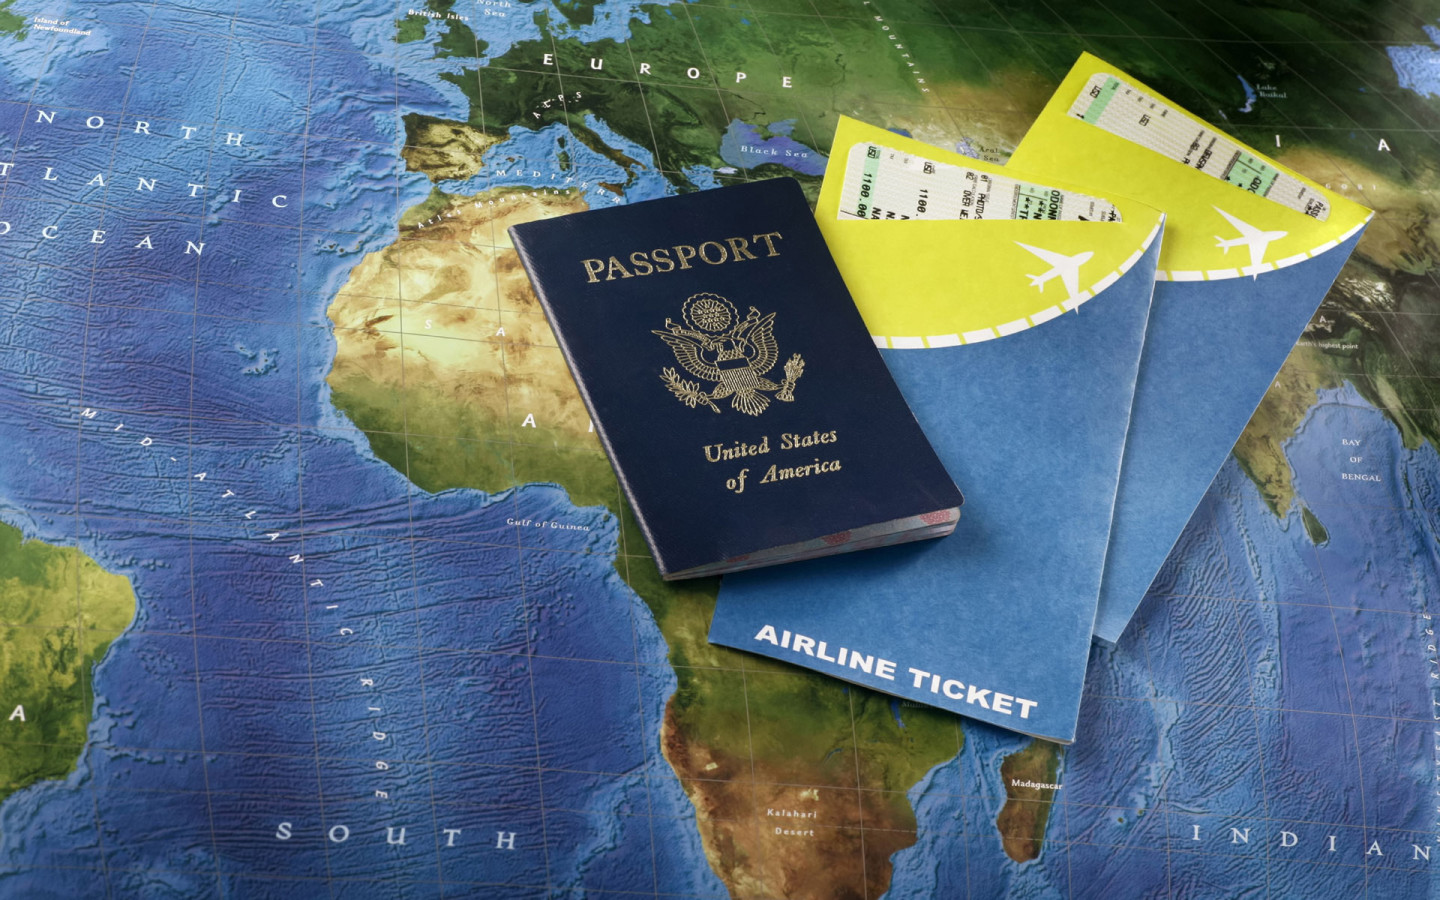 World-Travel-Tourism-Passport-Visa-Plane-Ticket